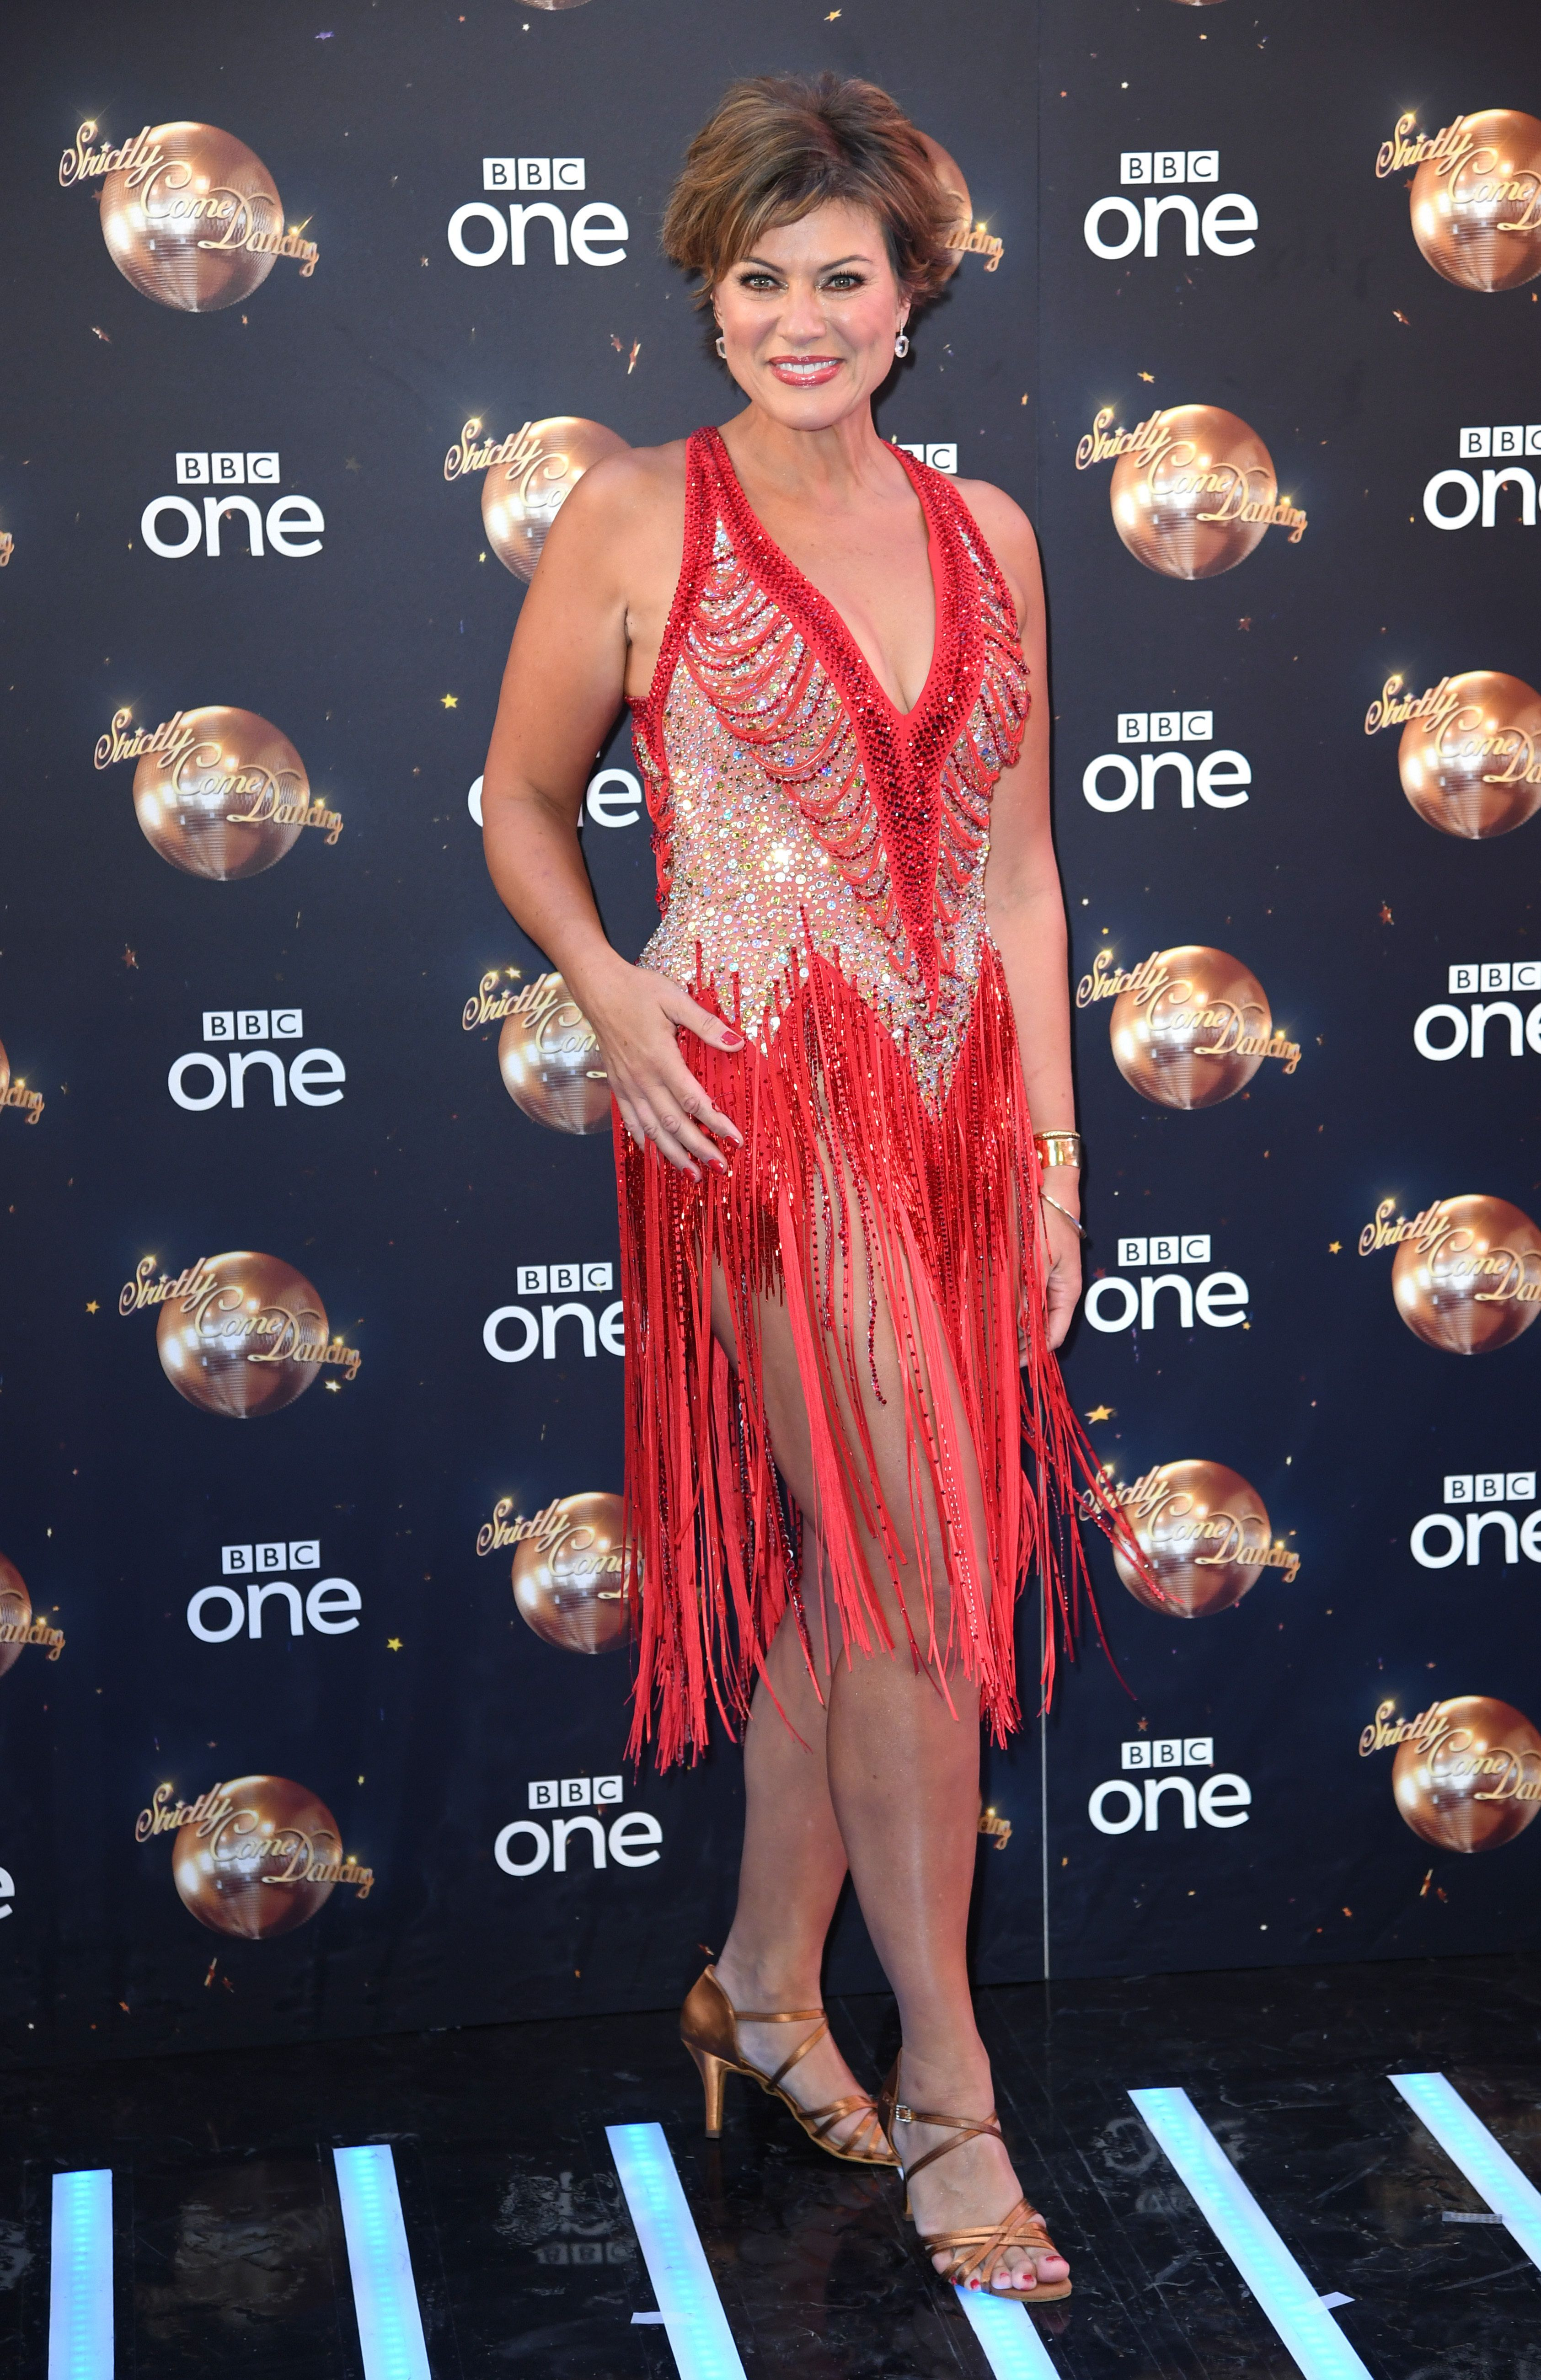 Kate Silverton Hits Back At Claims She Is 'Ditching' Kids To Appear On 'Strictly Come Dancing'